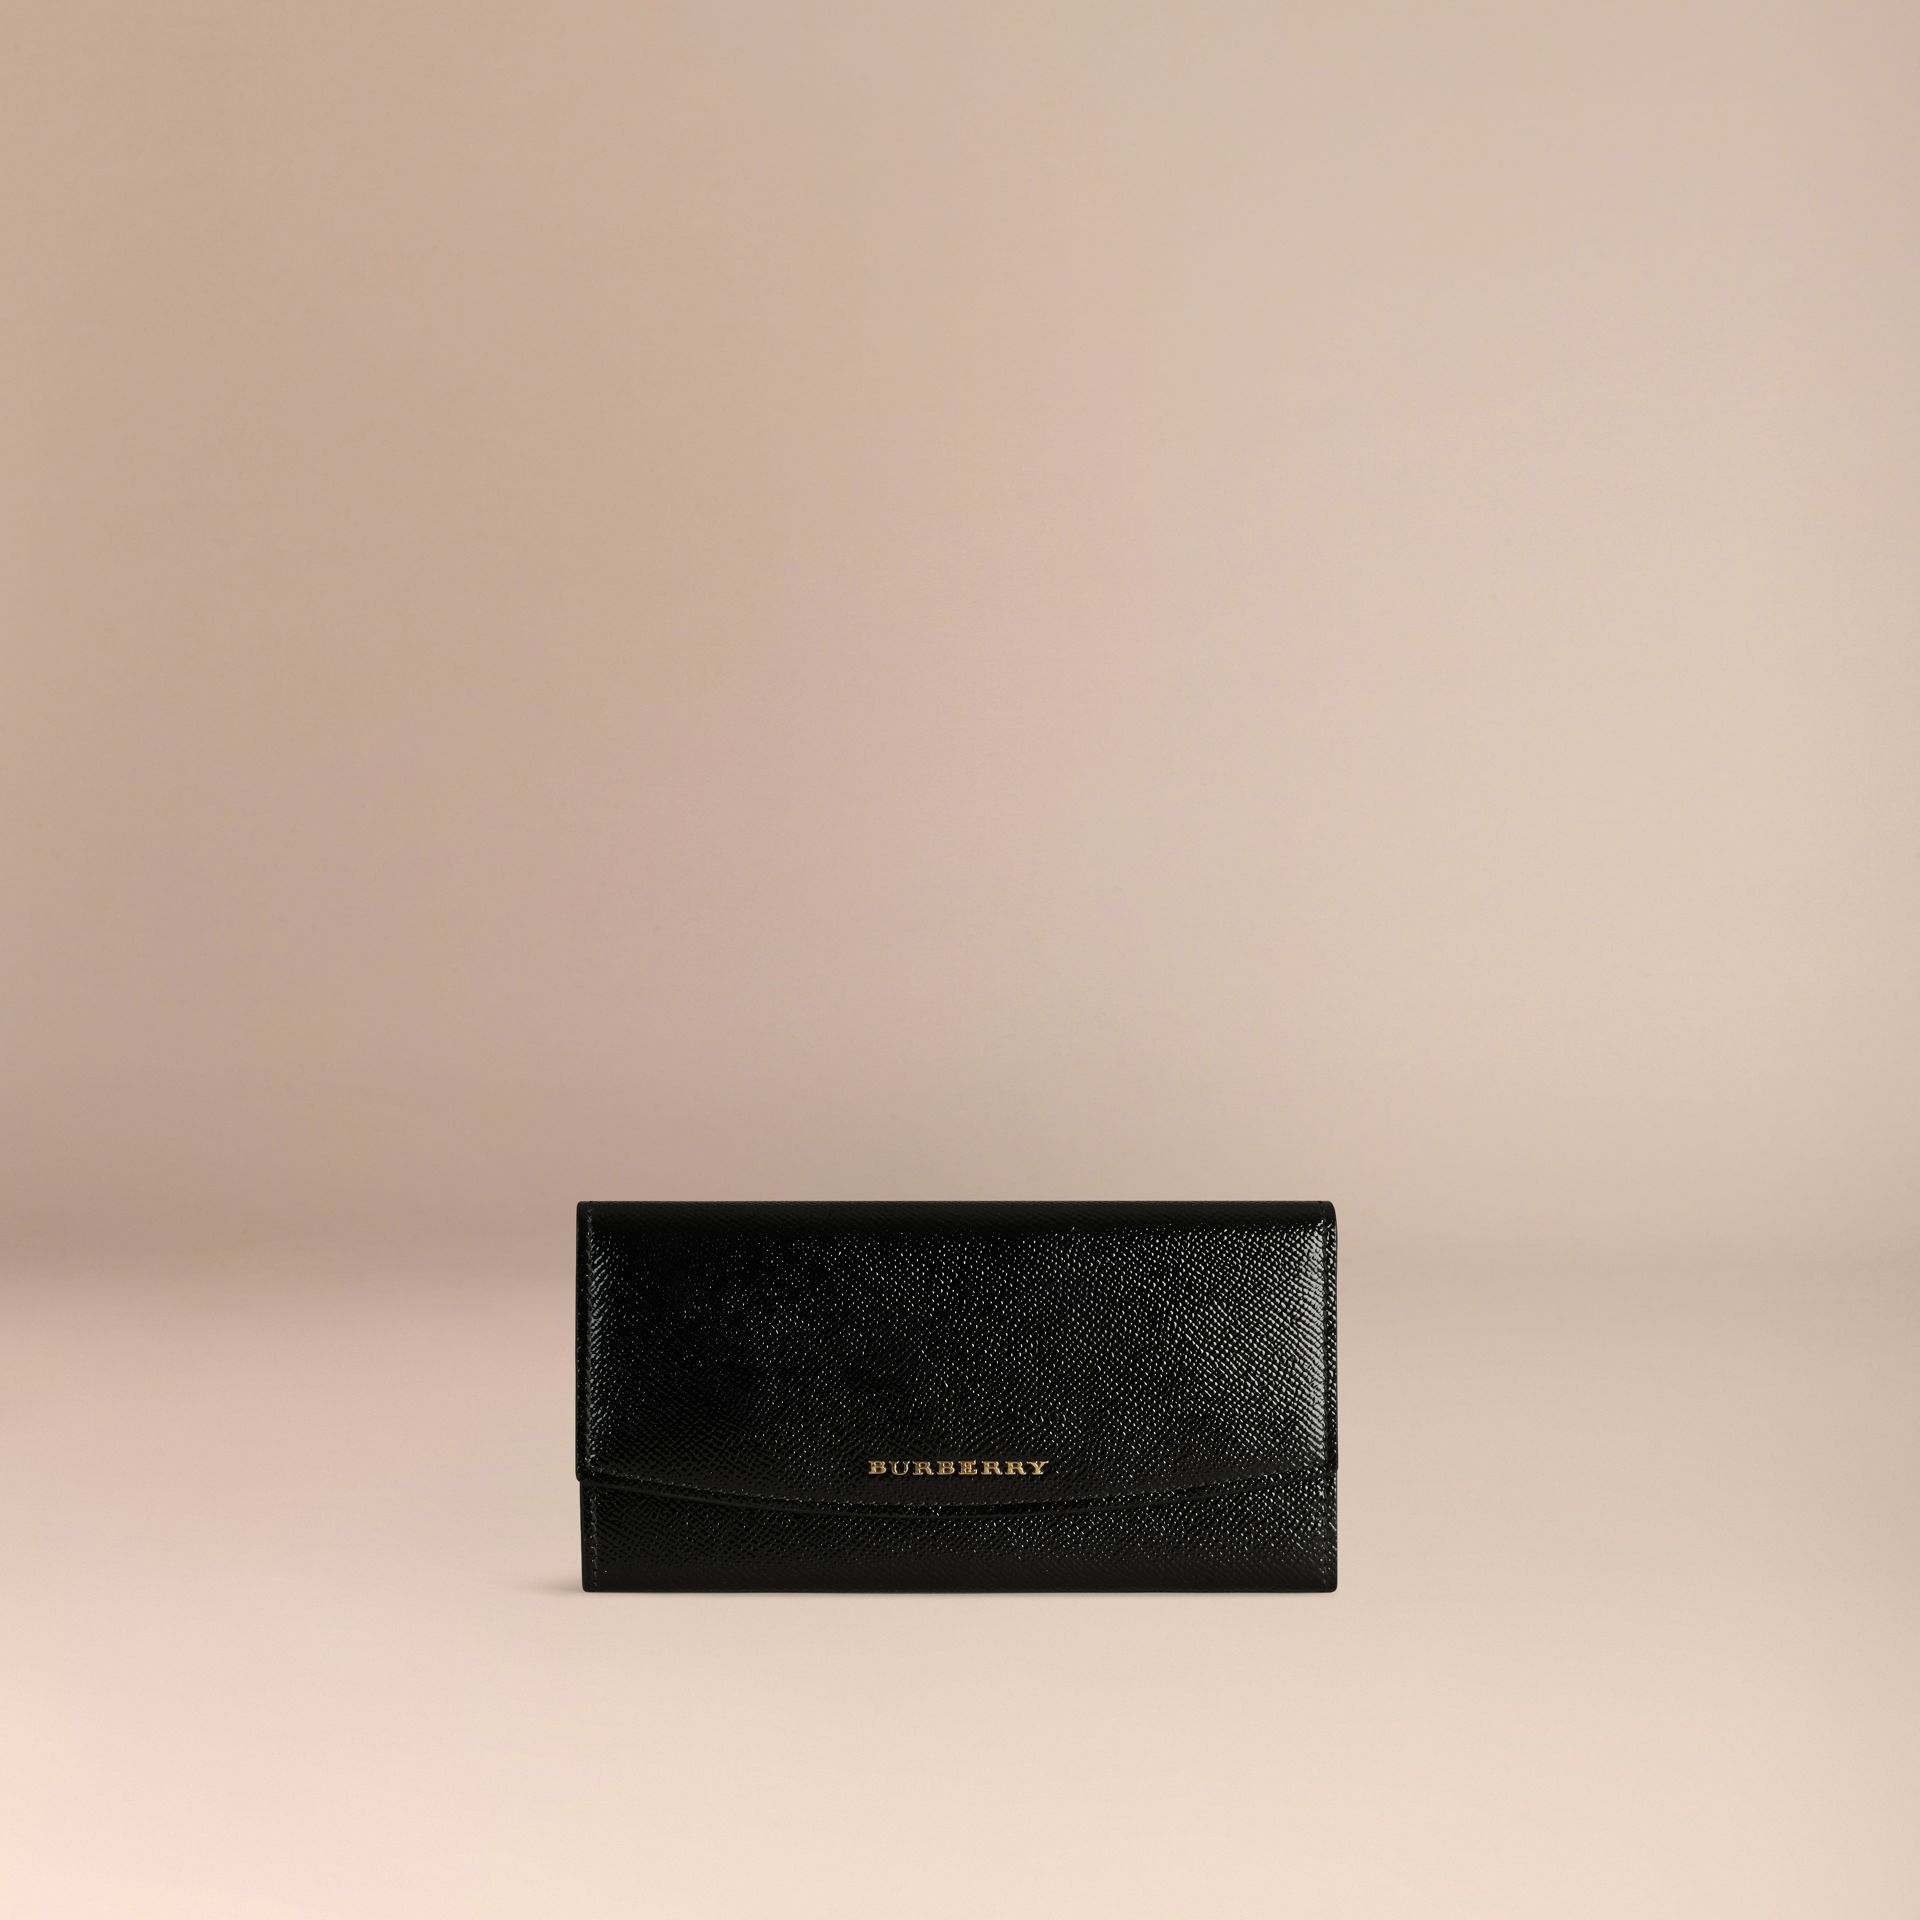 Black Patent London Leather Continental Wallet Black - gallery image 3